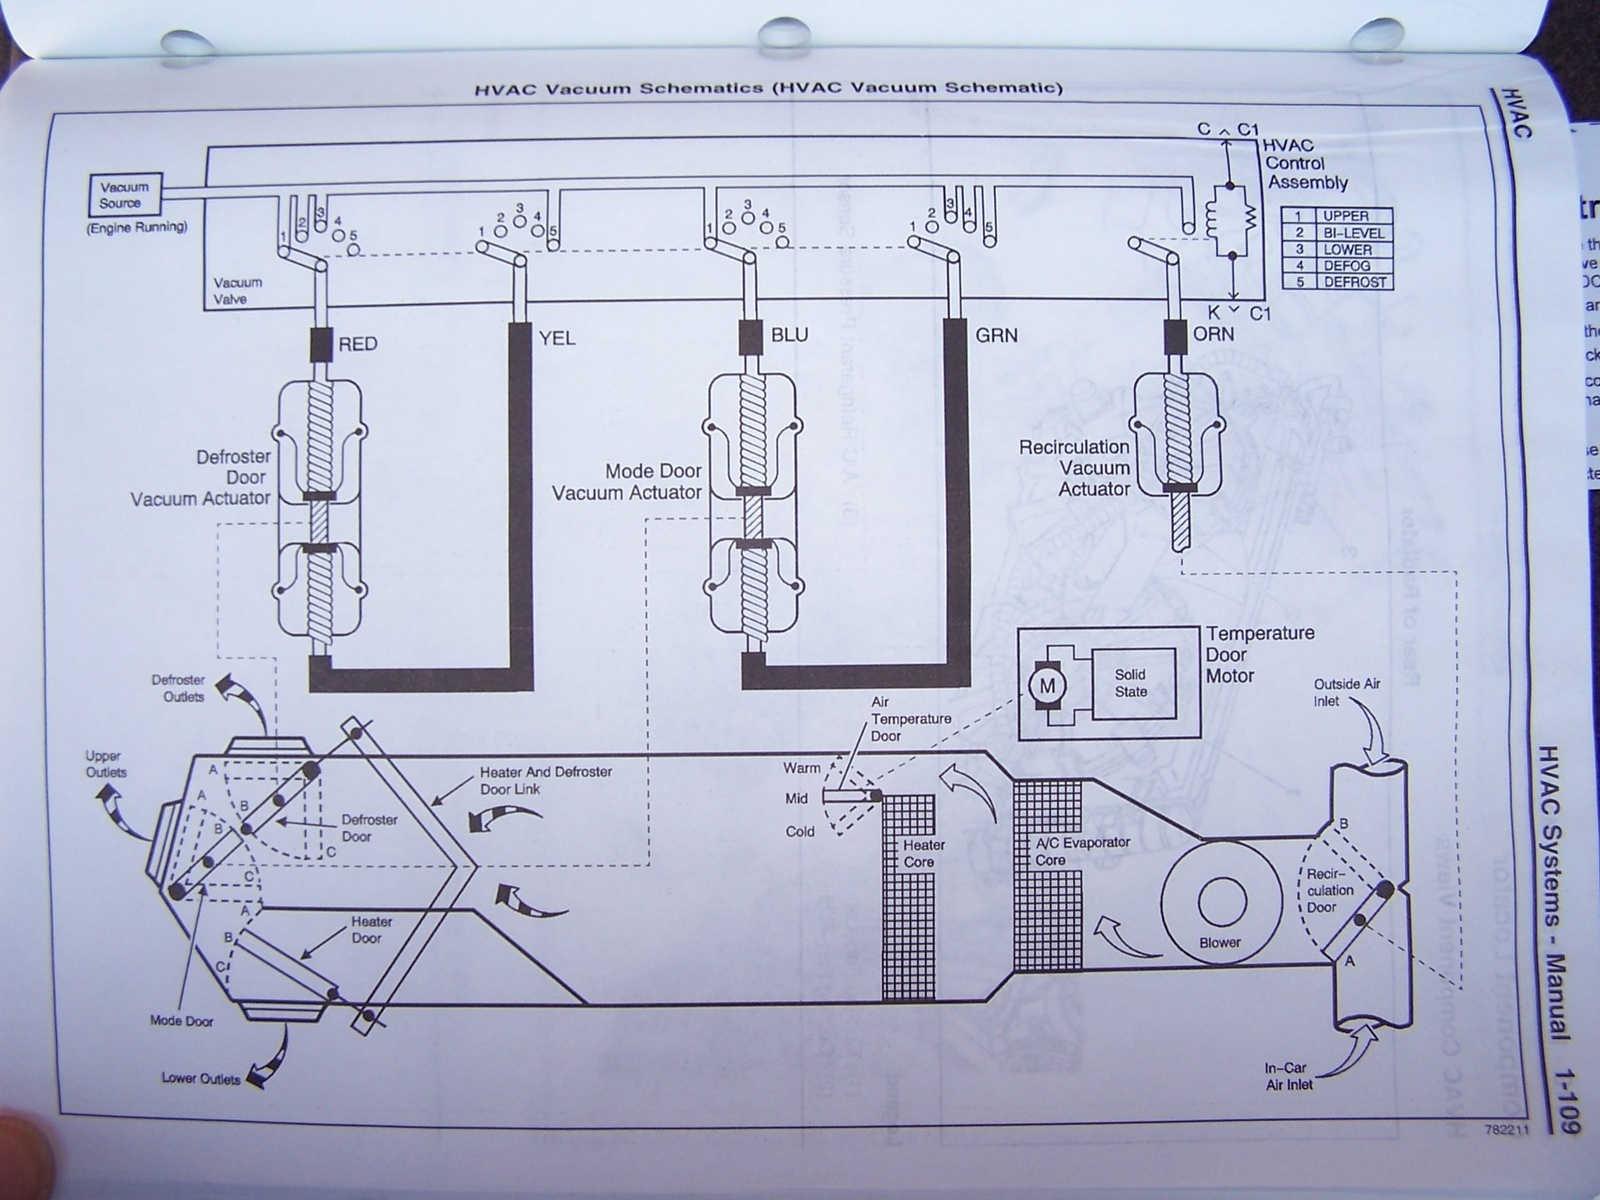 Jeep 2 4 Vacuum Lines Diagram Reveolution Of Wiring Wrangler Fuel Line Diagrams Oldsmobile Cutlass Supreme Questions For A 1987 Rh Cargurus Com 05 1993